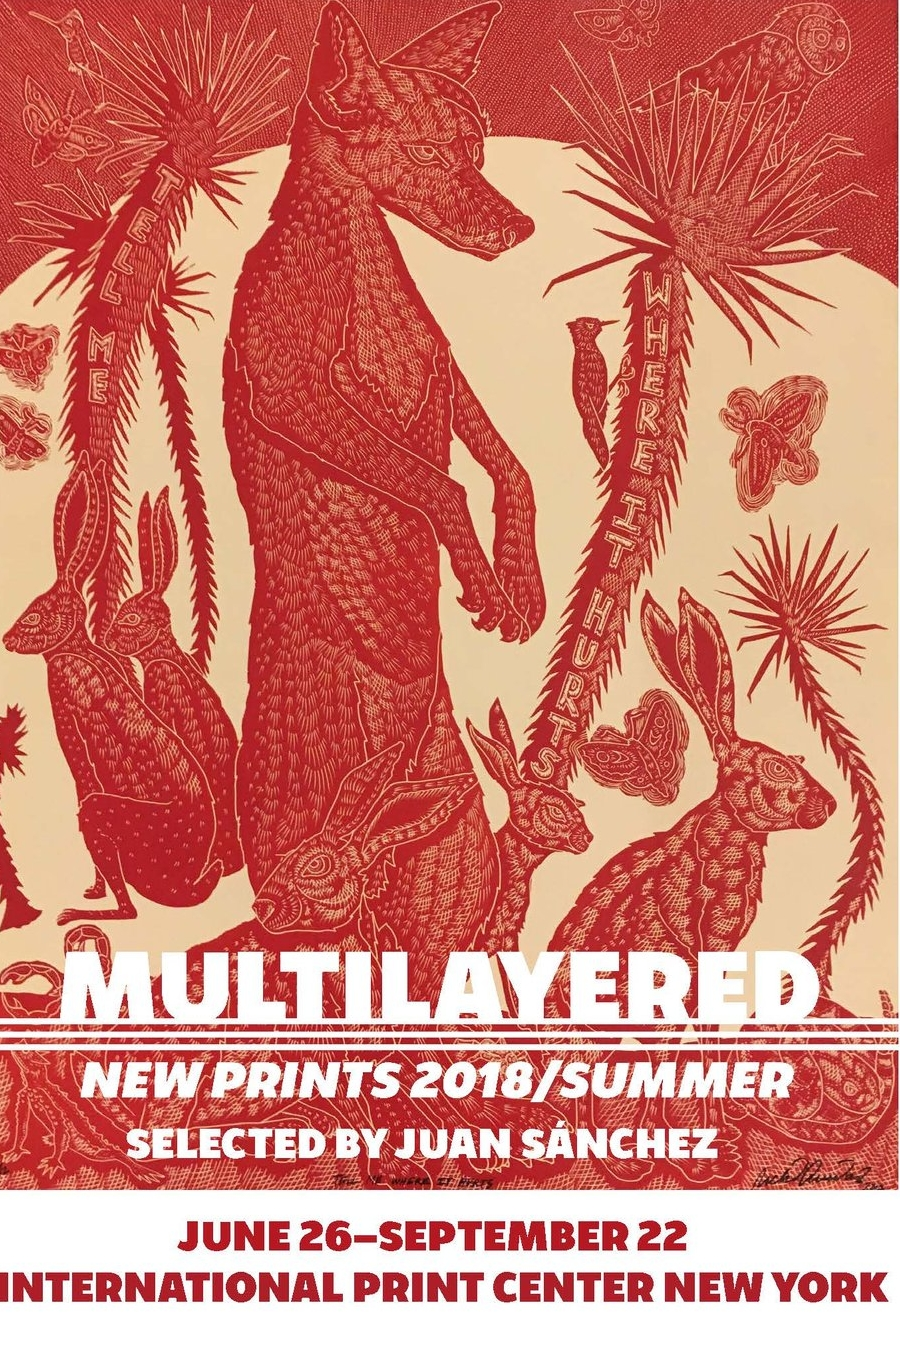 Multilayered+Postcard,+2018+Summer+New_Page_1.jpg